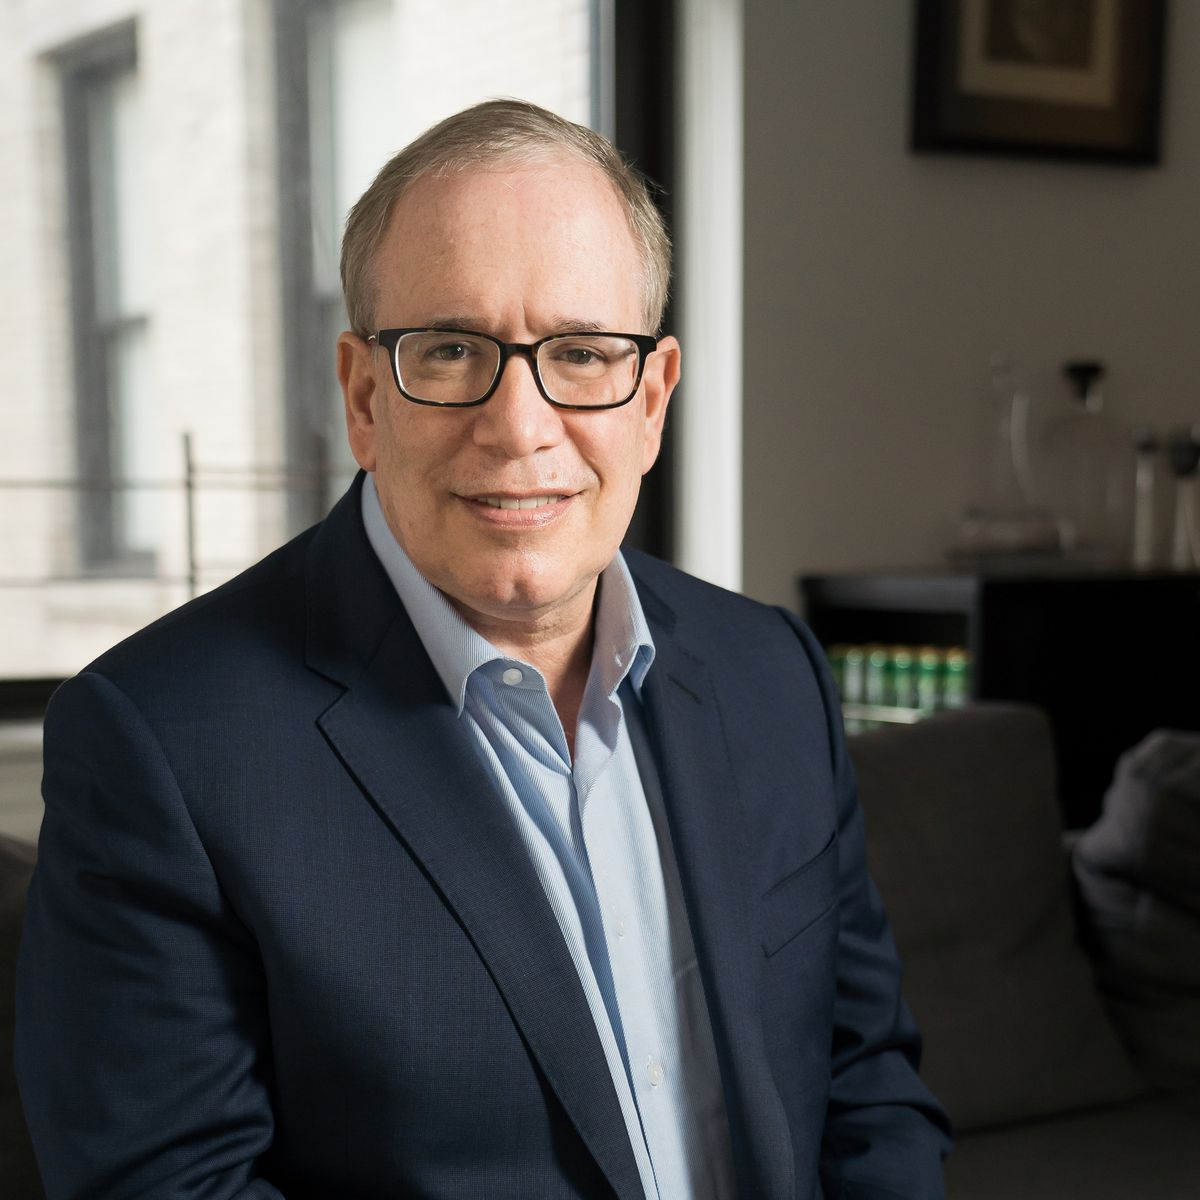 A headshot of NYC mayoral candidate Scott Stringer.